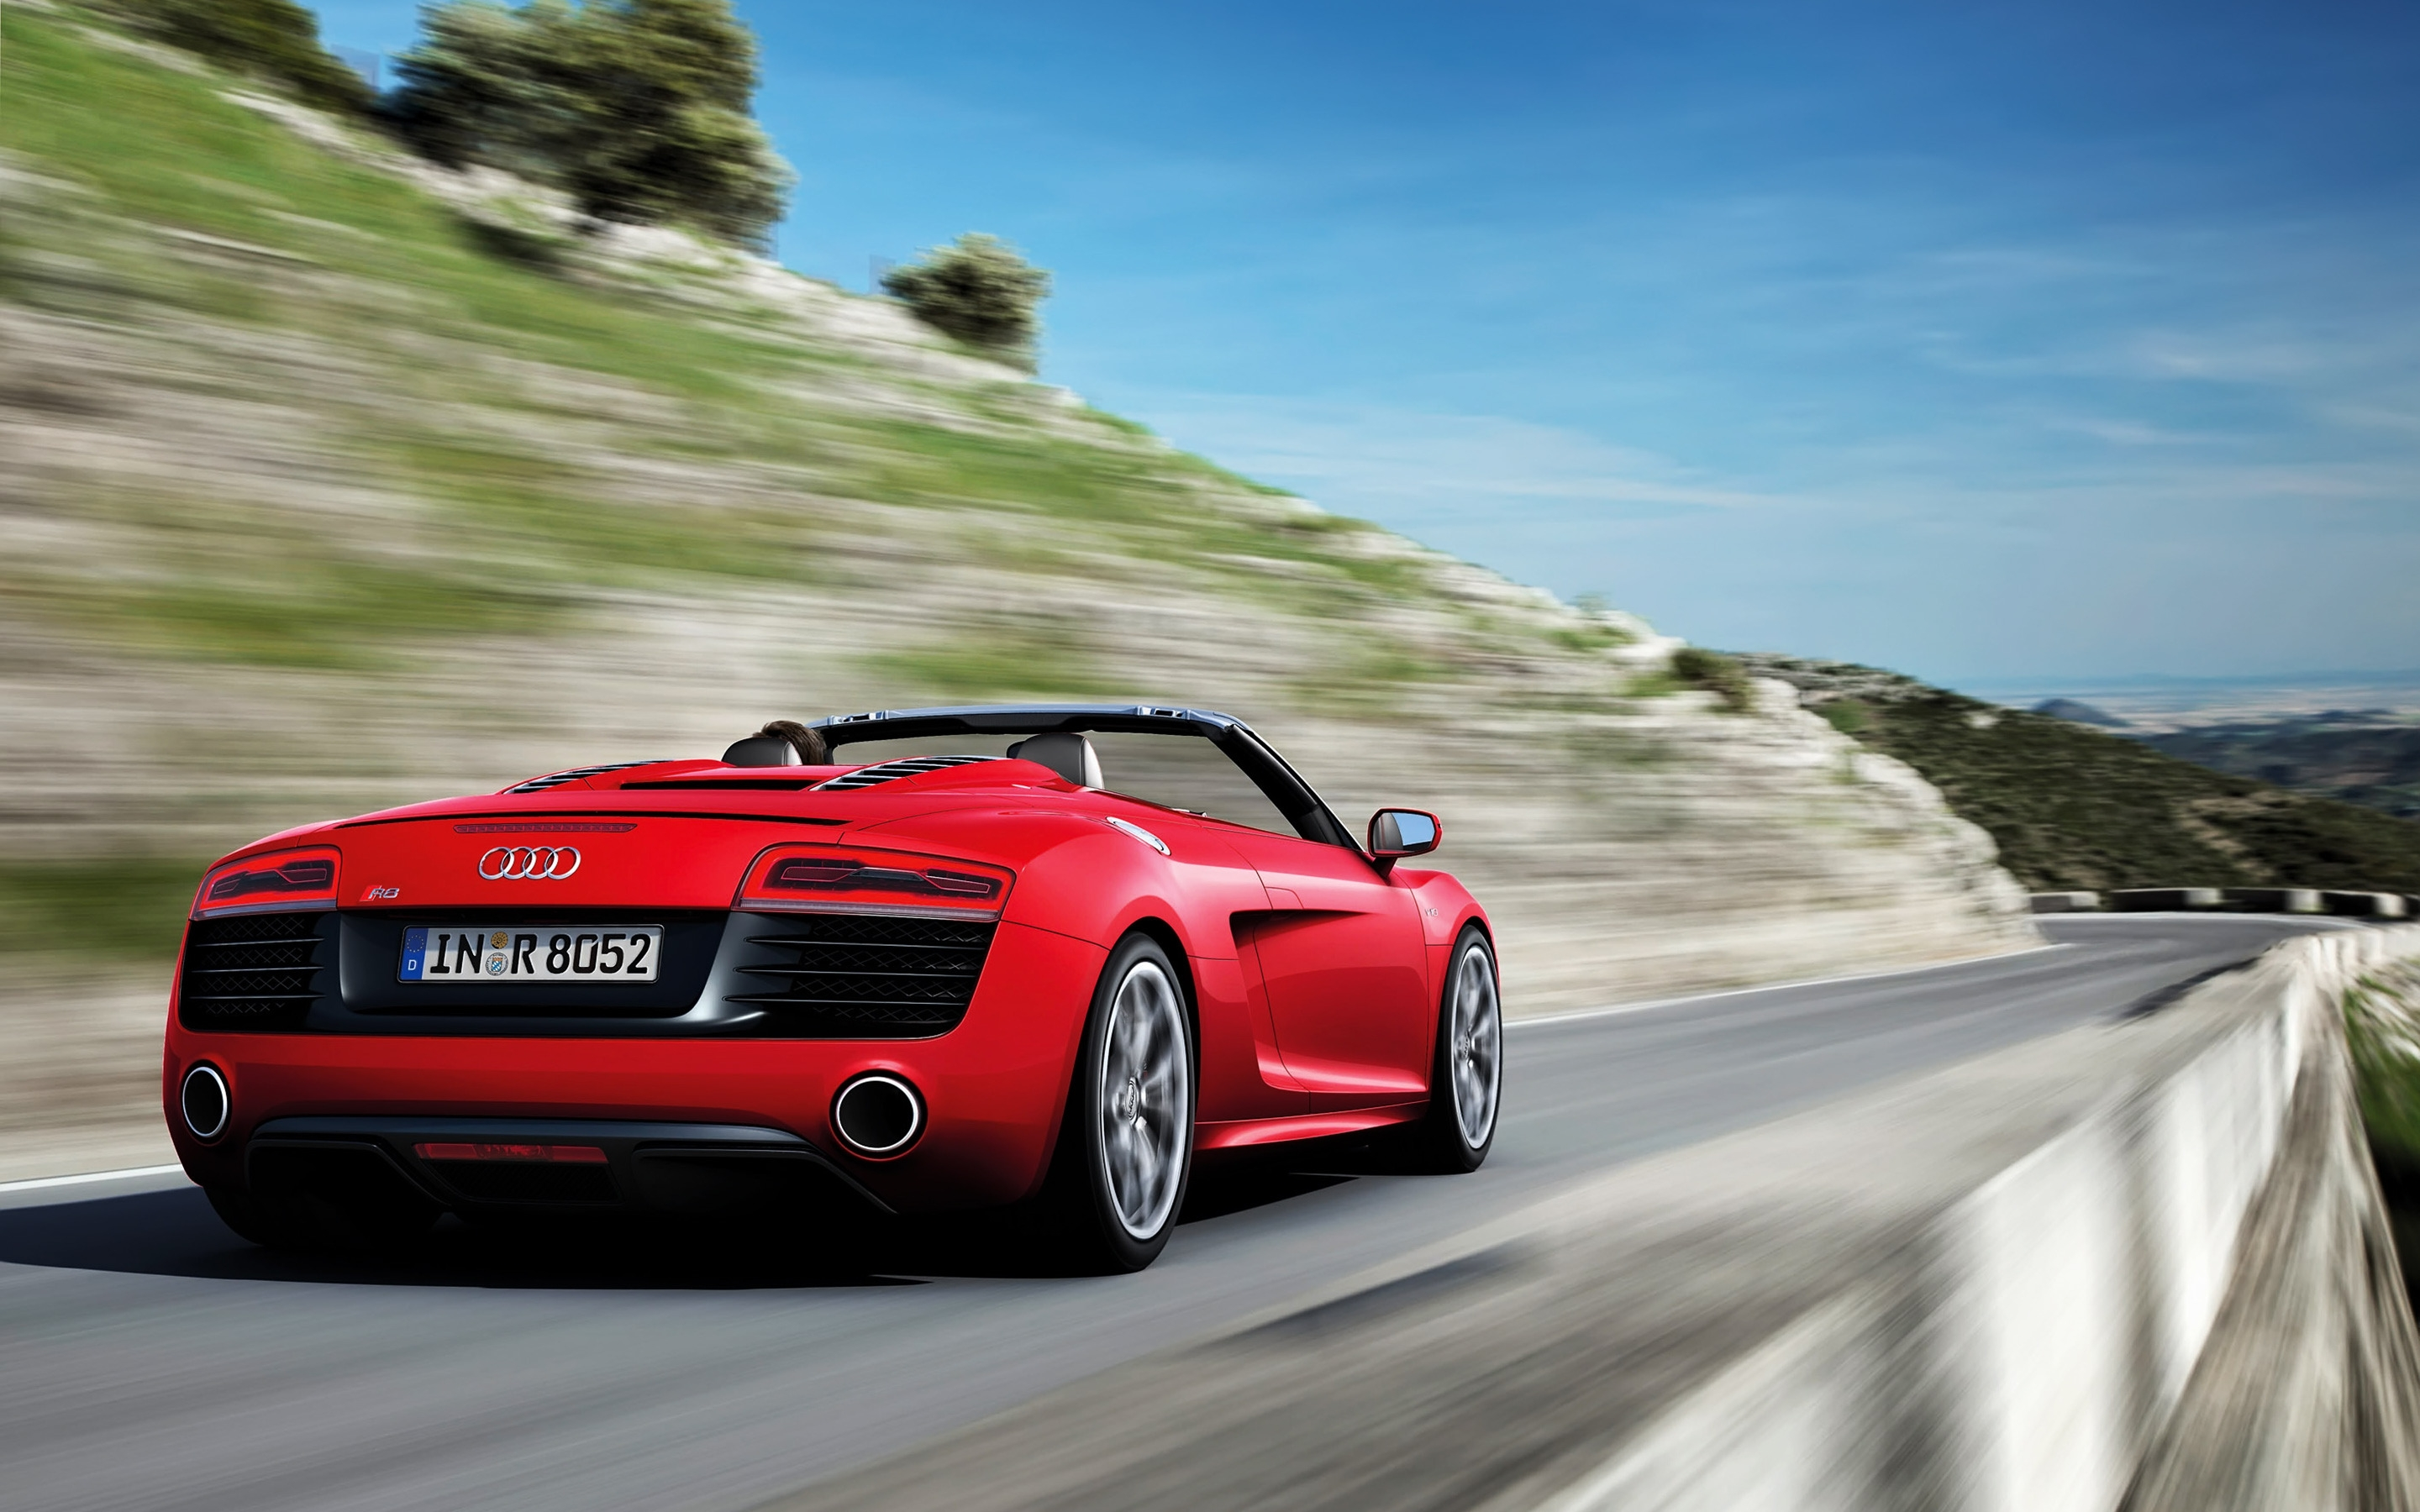 Audi R8 Spyder Speed for 2880 x 1800 Retina Display resolution